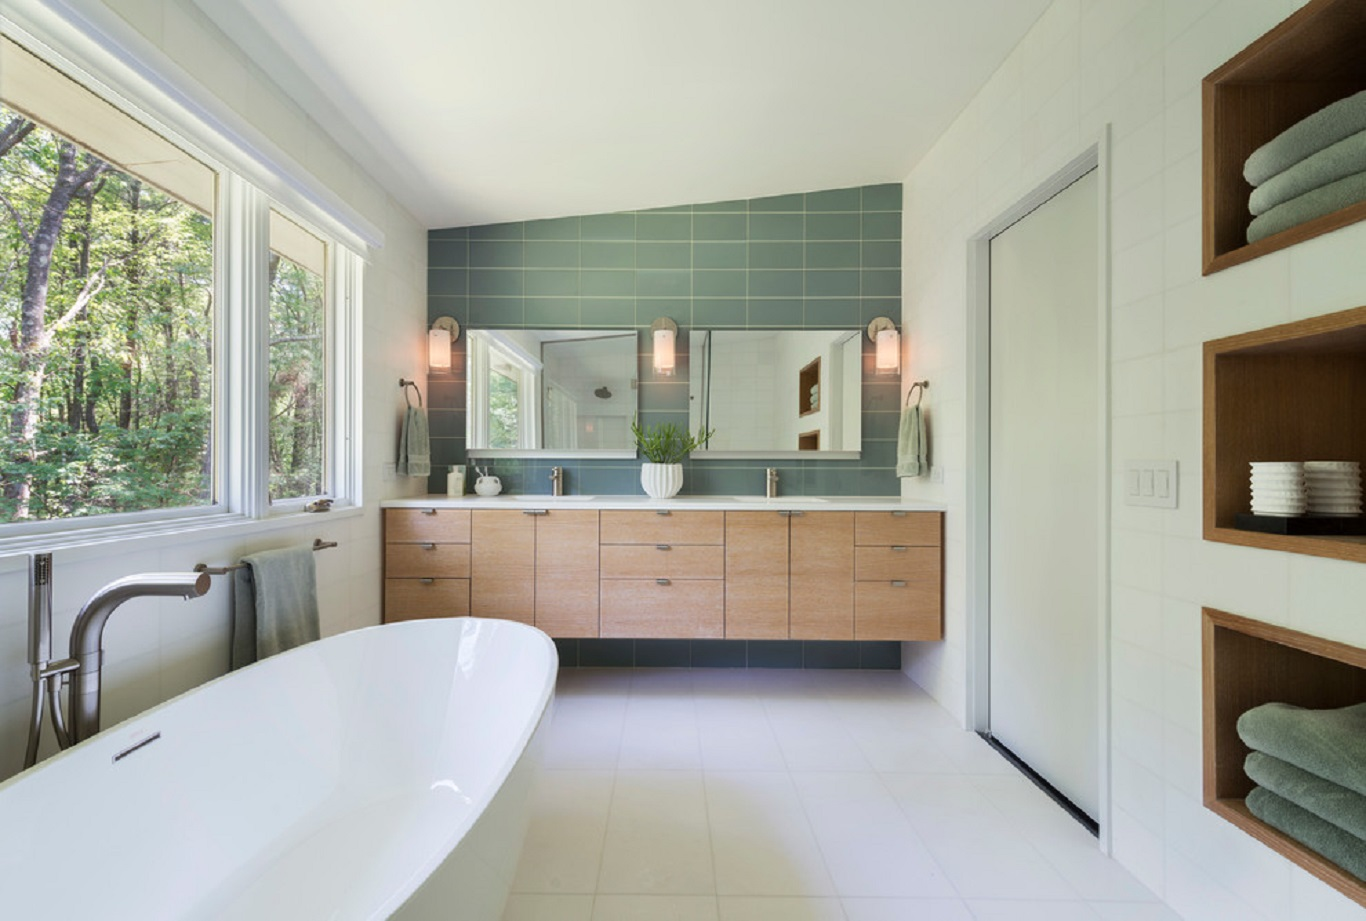 Standalone bathtub in whitewashed bathroom matched with wooden cabinets and various teal elements